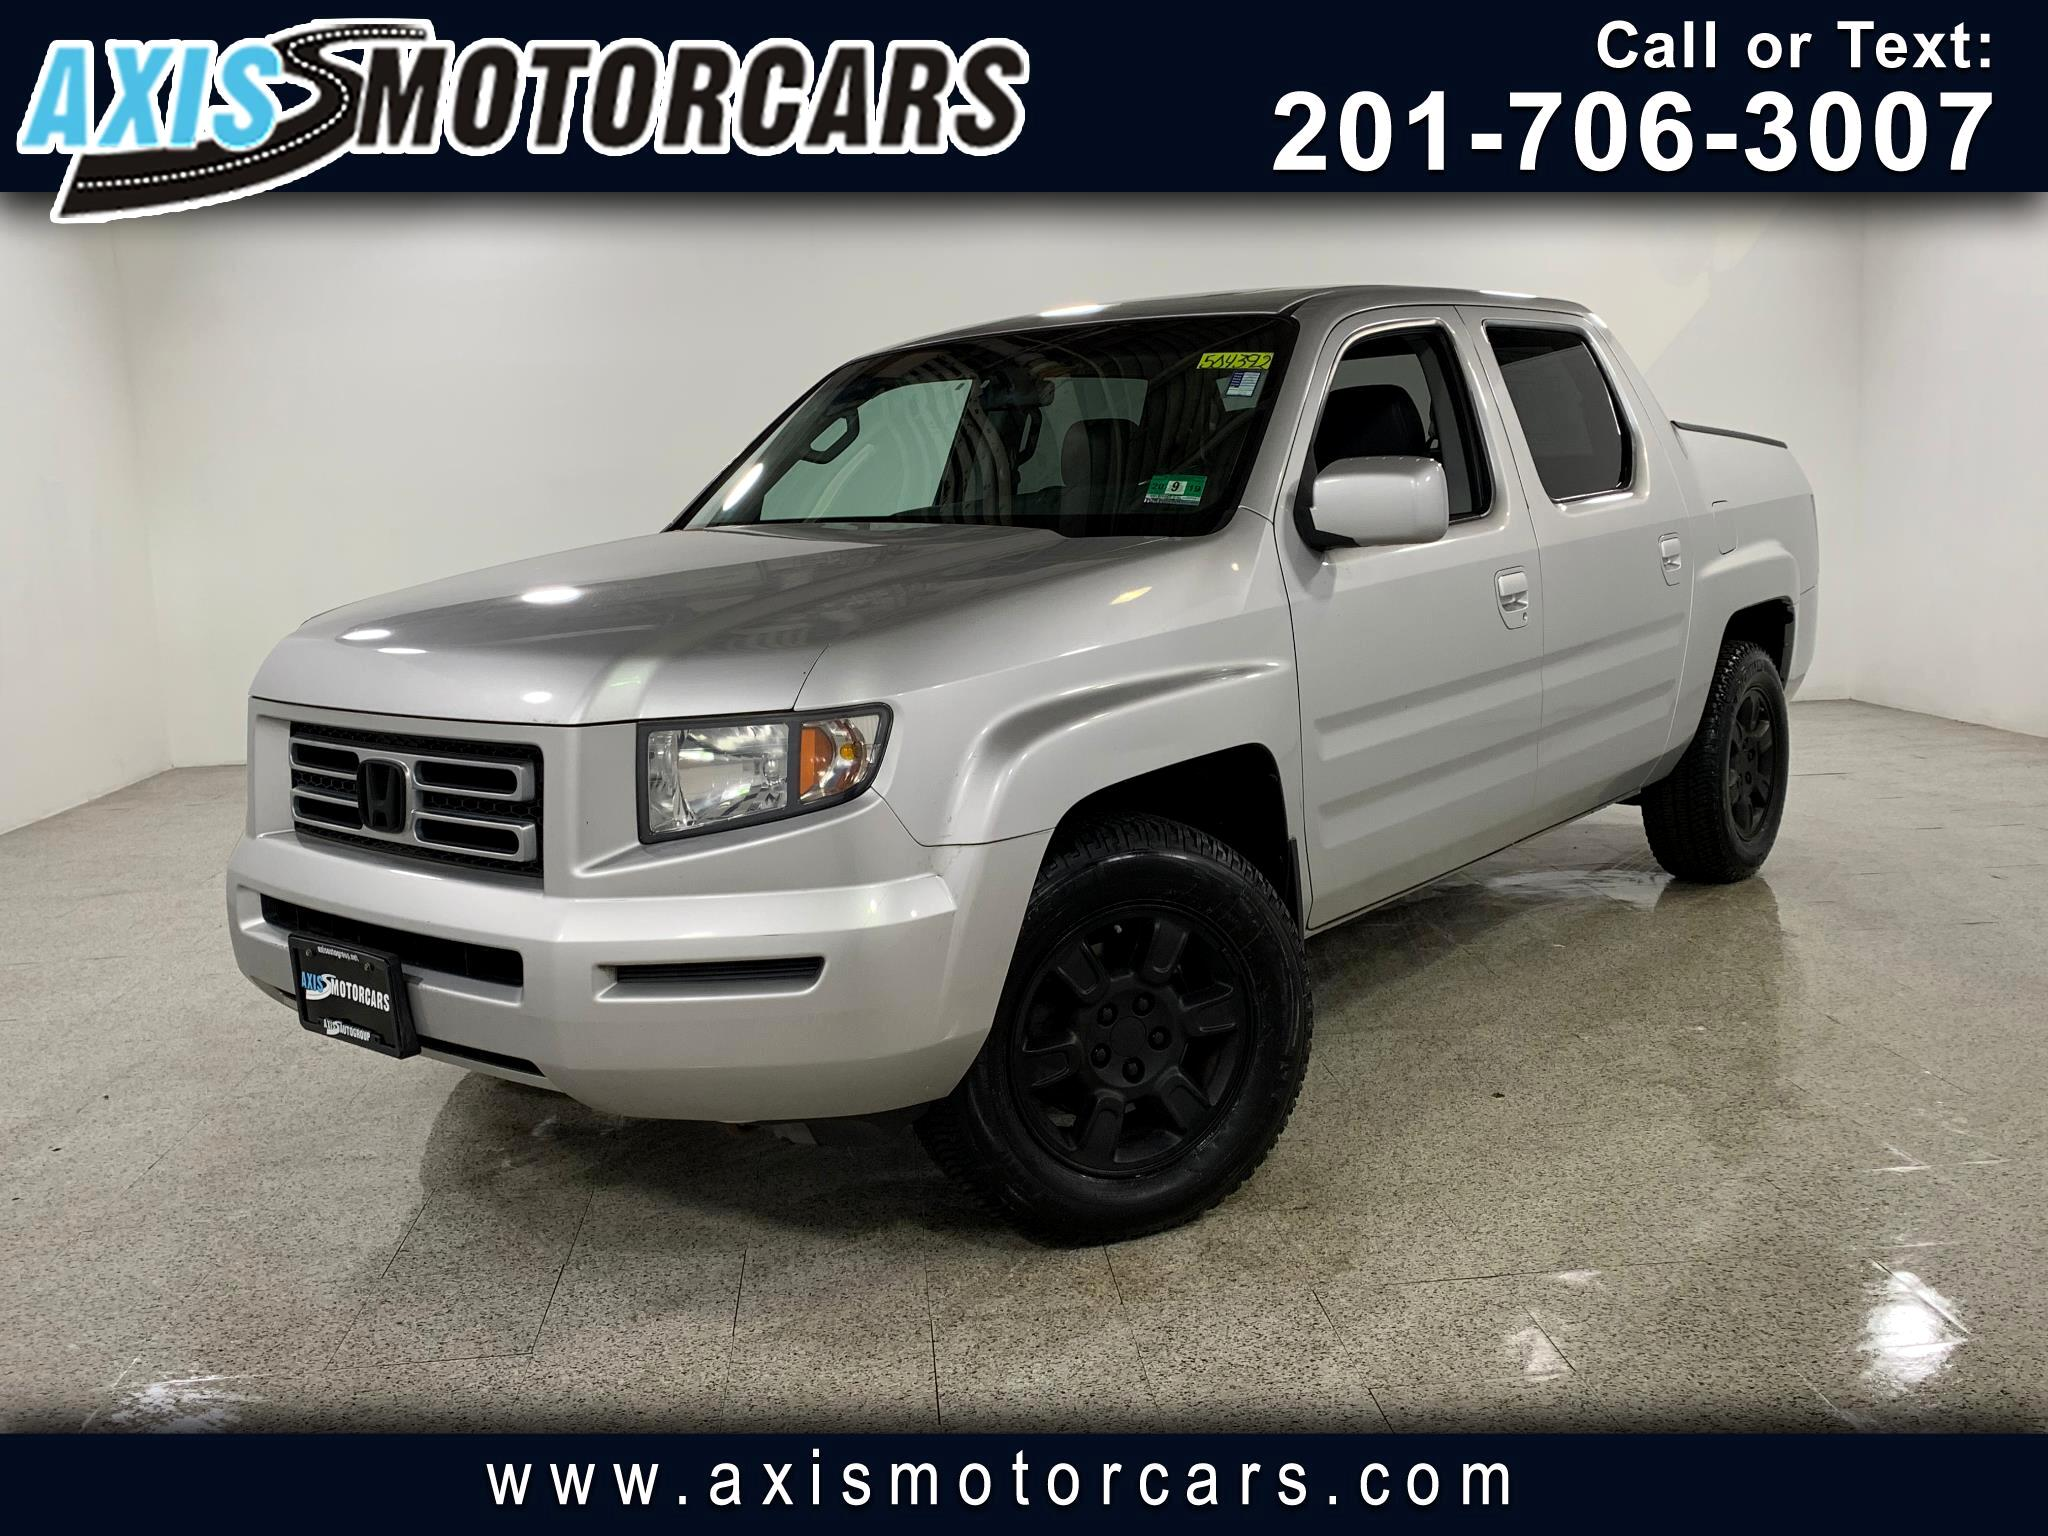 2007 Honda Ridgeline Crew Cab RTL w/Leather Navigation